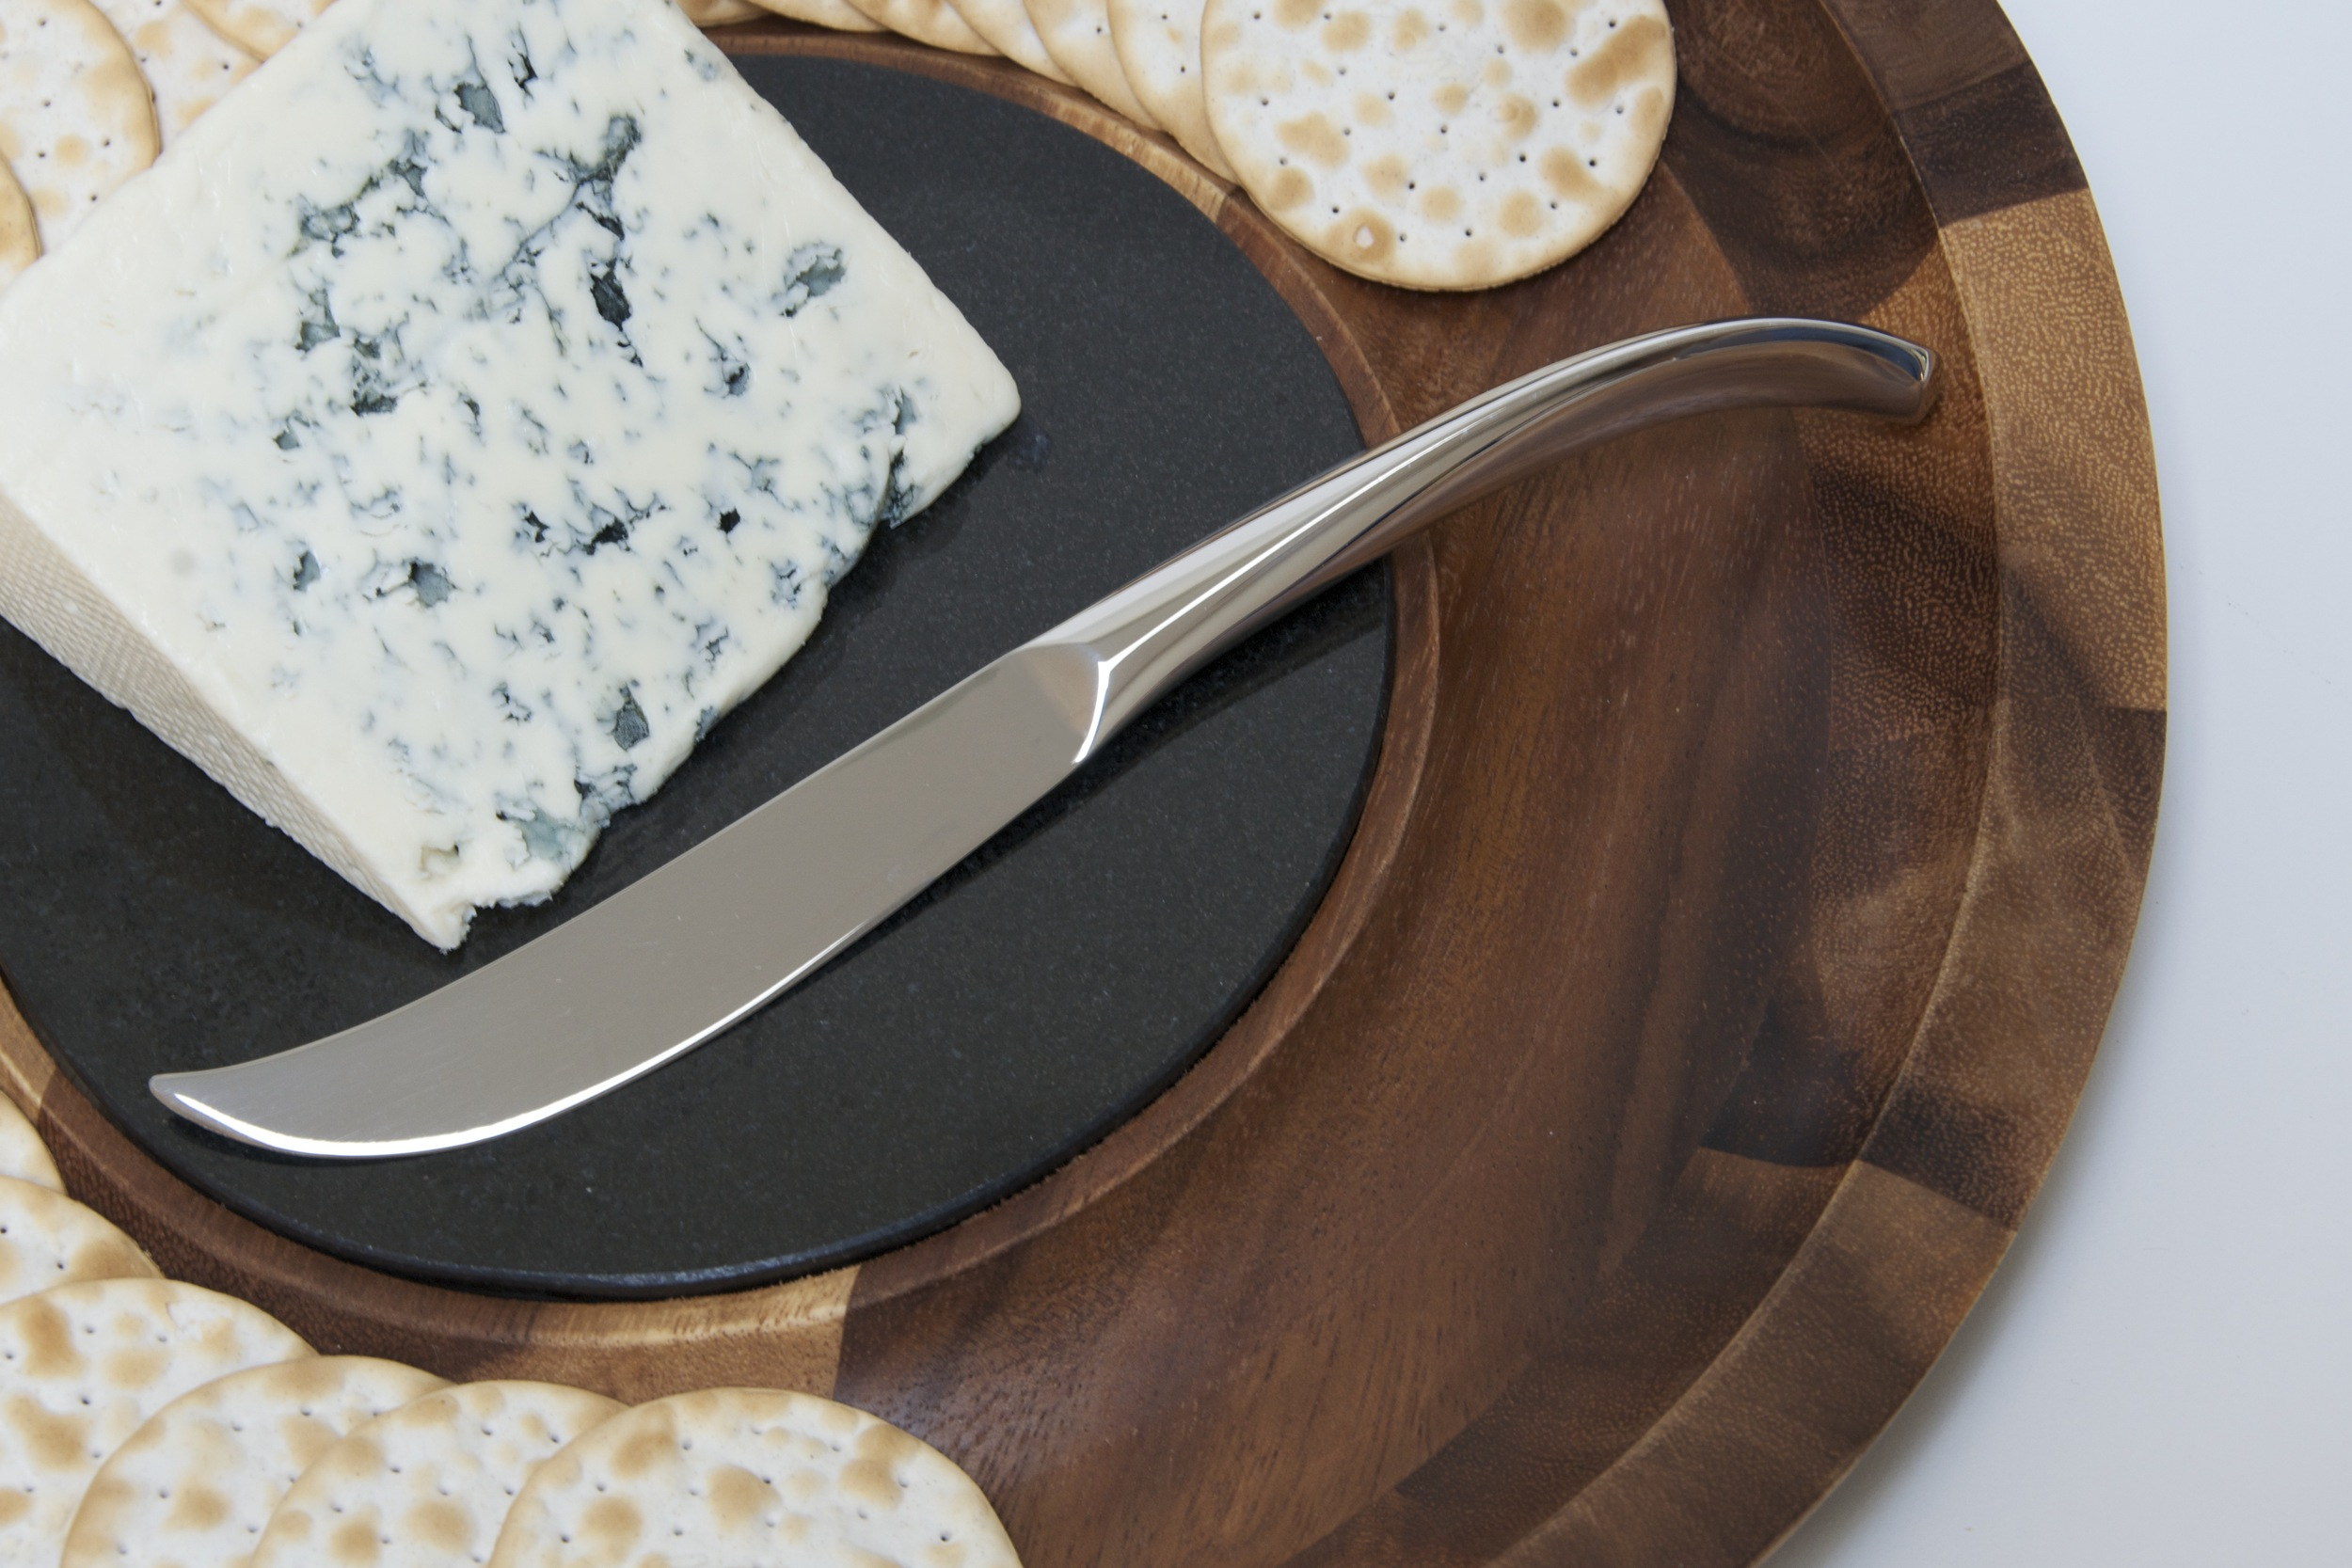 Butterfly Cheese Knife - Nambe 2009